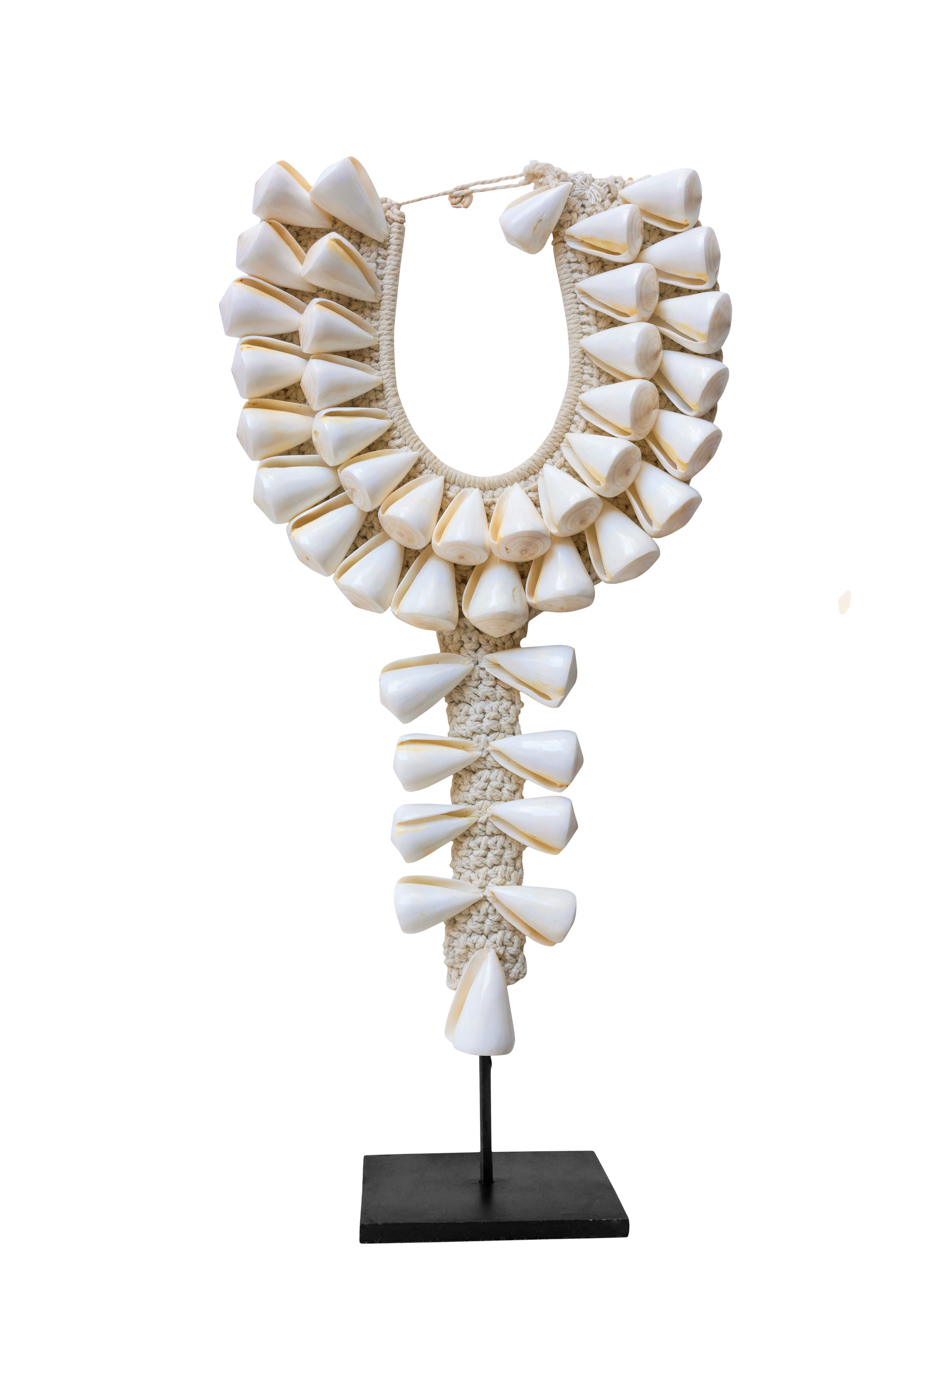 Decorative necklace with cone shells cone shells